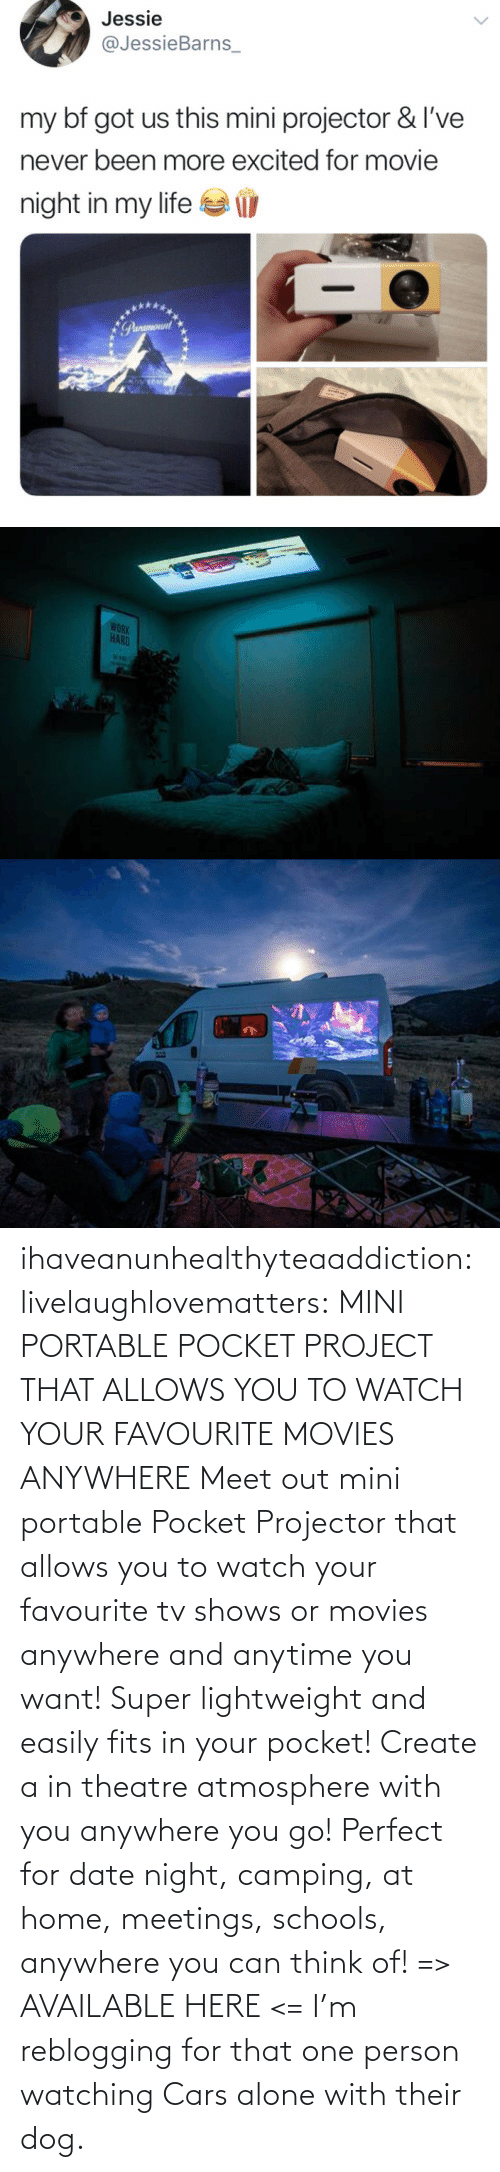 movies: ihaveanunhealthyteaaddiction:  livelaughlovematters: MINI PORTABLE POCKET PROJECT THAT ALLOWS YOU TO WATCH YOUR FAVOURITE MOVIES ANYWHERE Meet out mini portable Pocket Projector that allows you to watch your favourite tv shows or movies anywhere and anytime you want! Super lightweight and easily fits in your pocket! Create a in theatre atmosphere with you anywhere you go! Perfect for date night, camping, at home, meetings, schools, anywhere you can think of! => AVAILABLE HERE <=    I'm reblogging for that one person watching Cars alone with their dog.